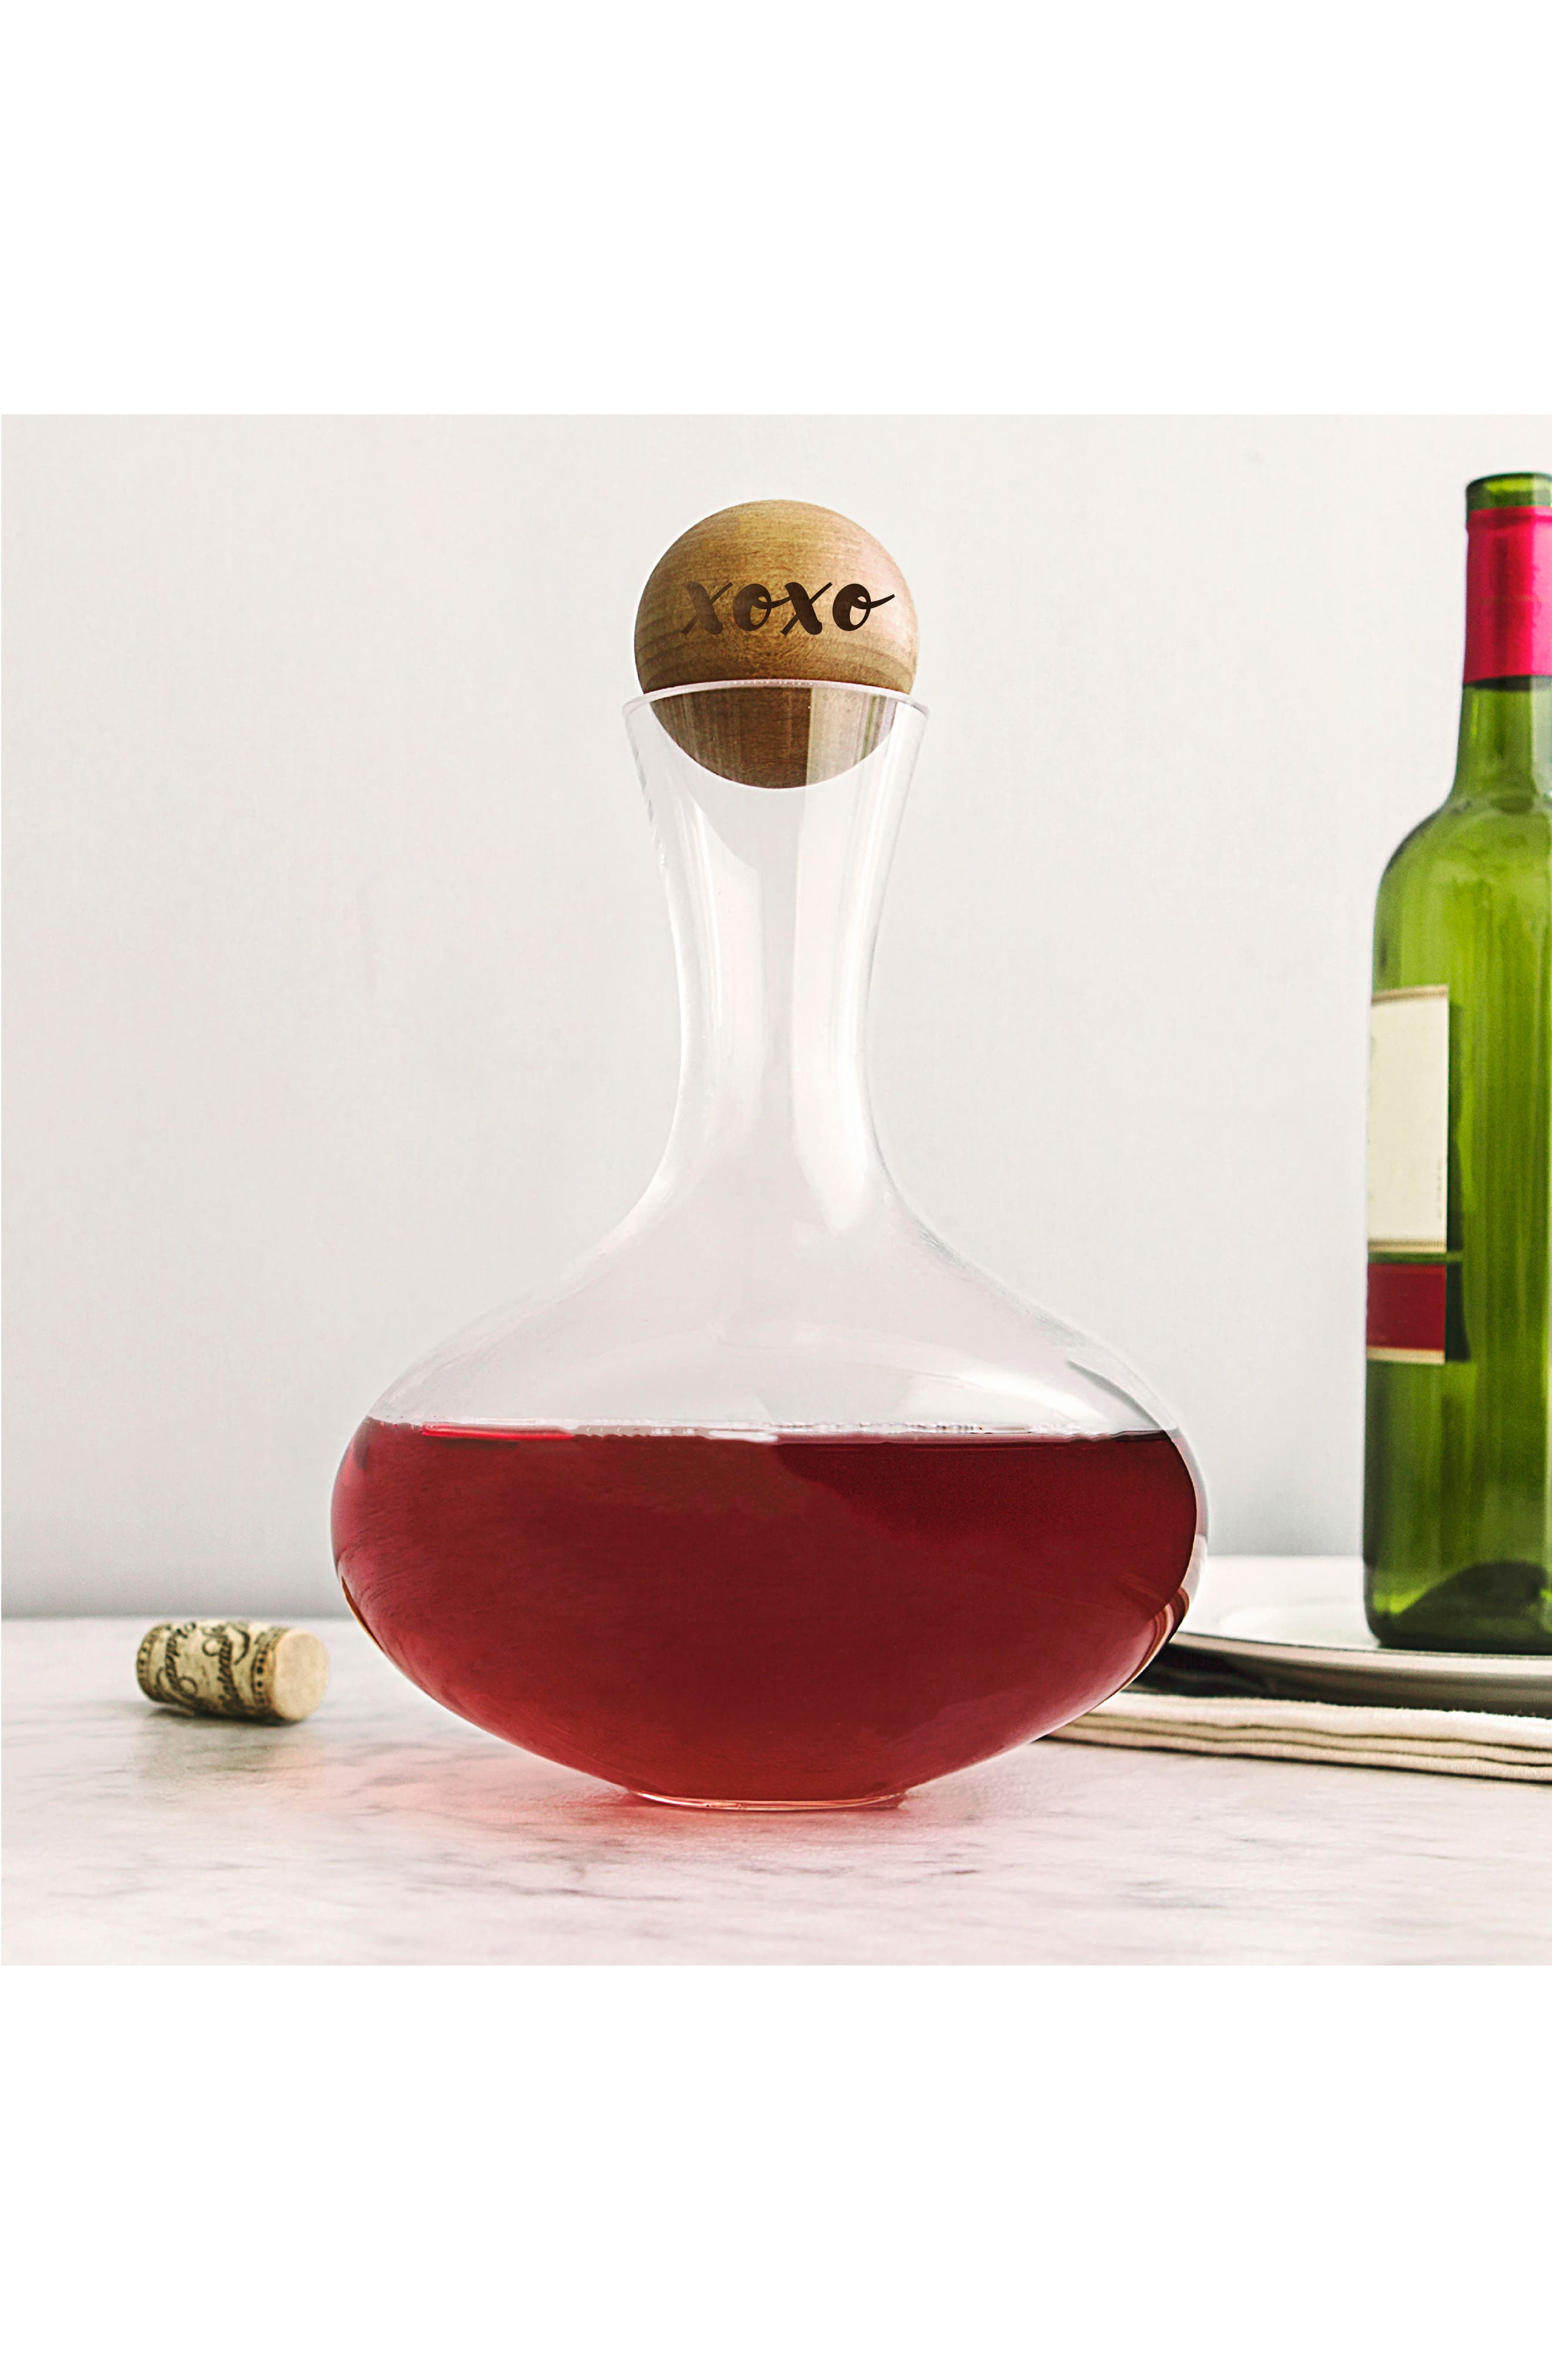 Cathy's Concept XOXO Wine Decanter,                         Main,                         color, Clear